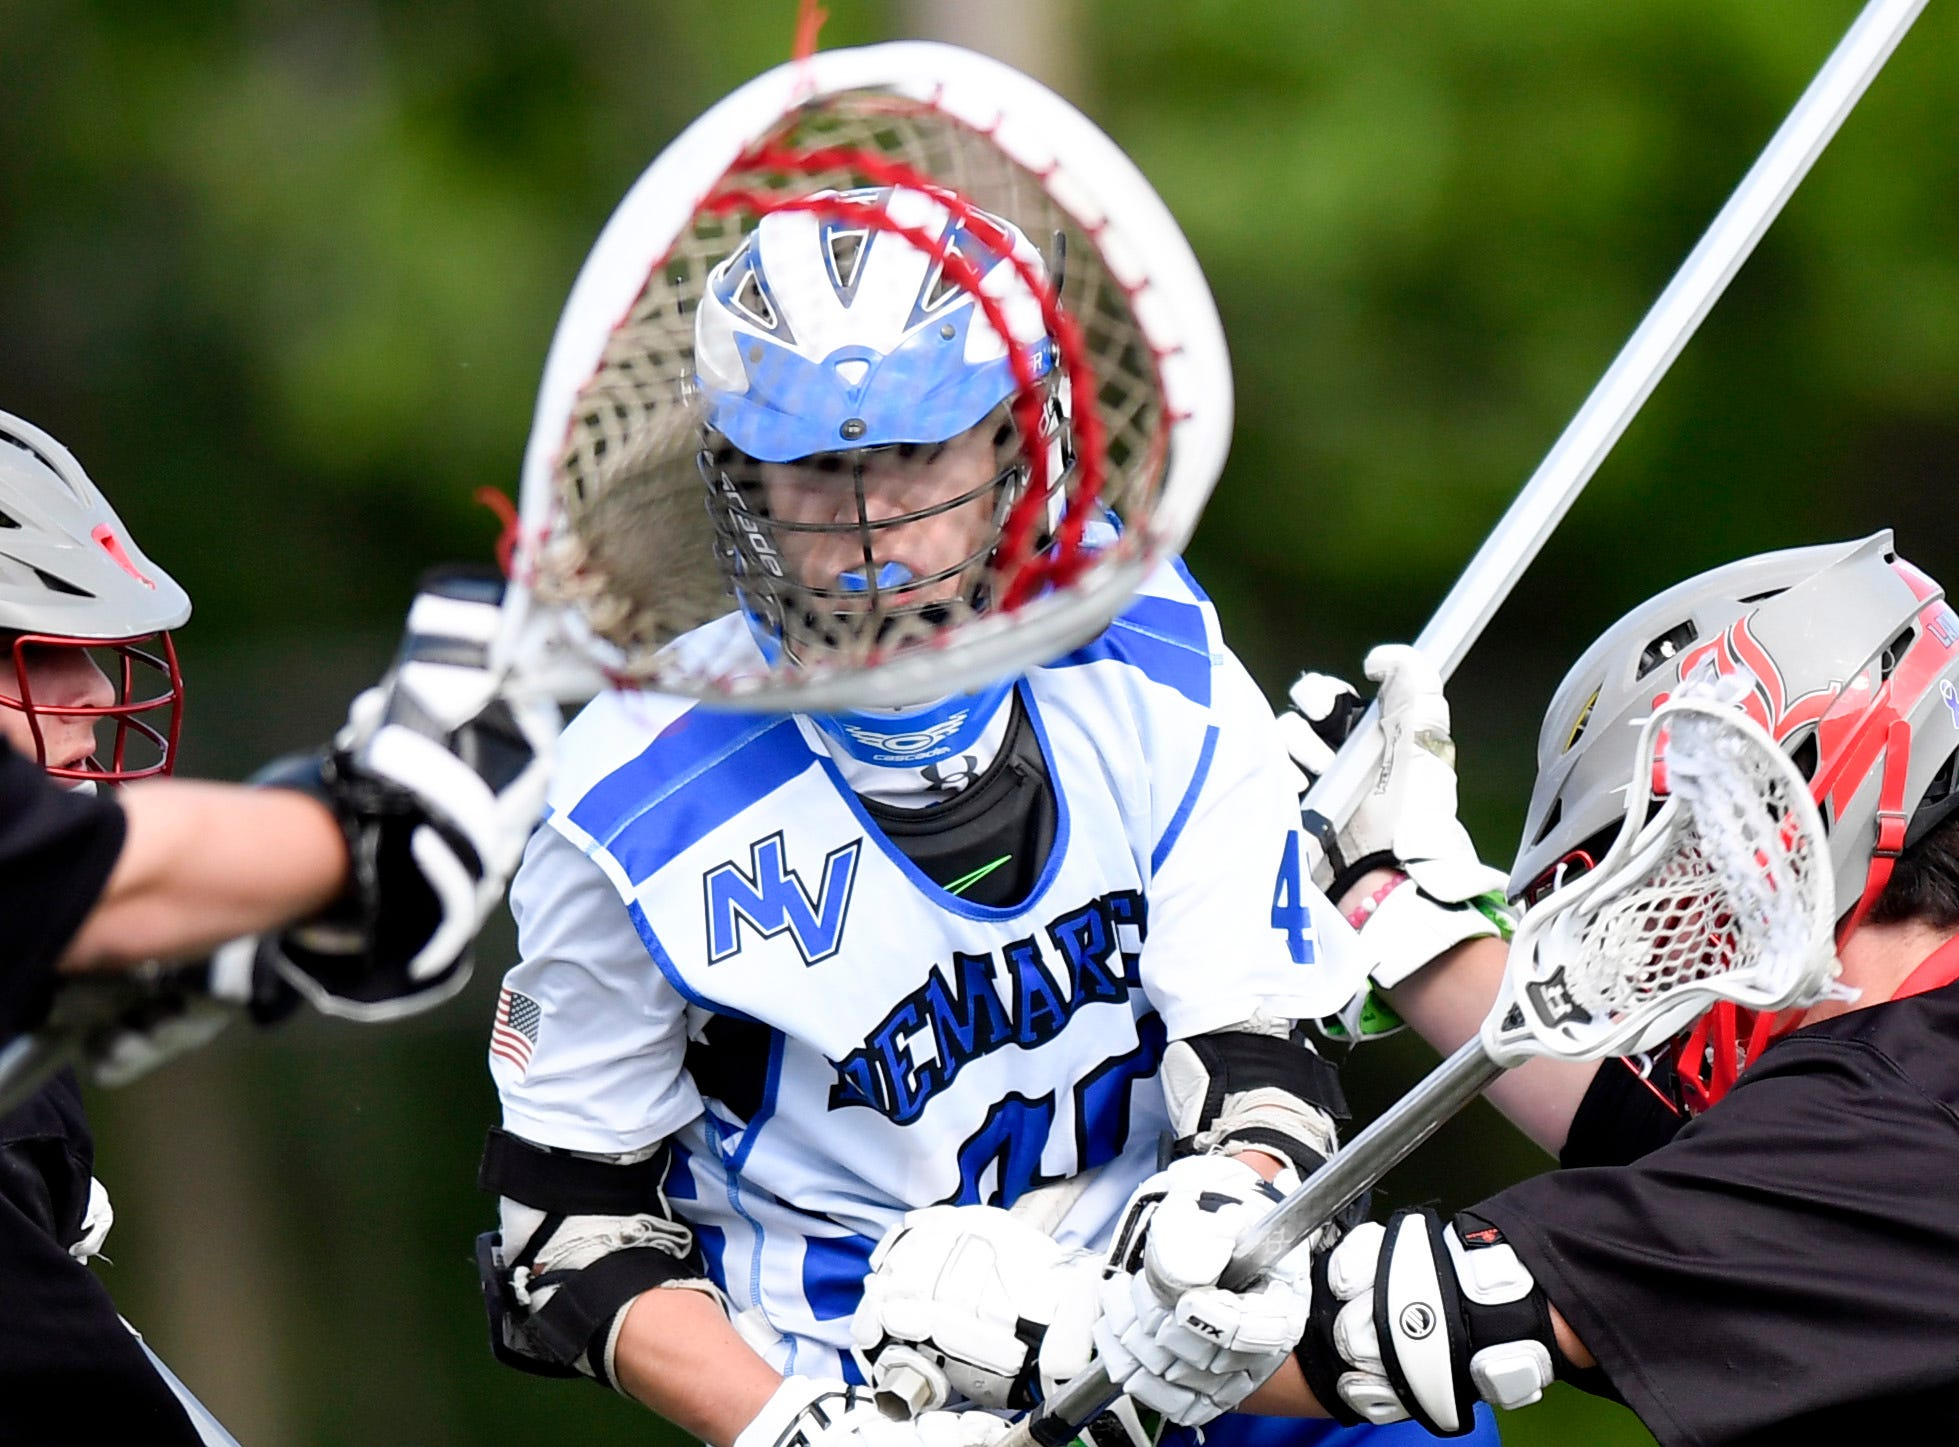 Demarest's Logan Hinds, center, attempts a shot on goal with pressure from Lakeland defenders. Northern Valley Demarest defeated Lakeland 6-3 in the first round of the North Group 2 boys lacrosse tournament on Wednesday, May 15, 2019 in Demarest, NJ.